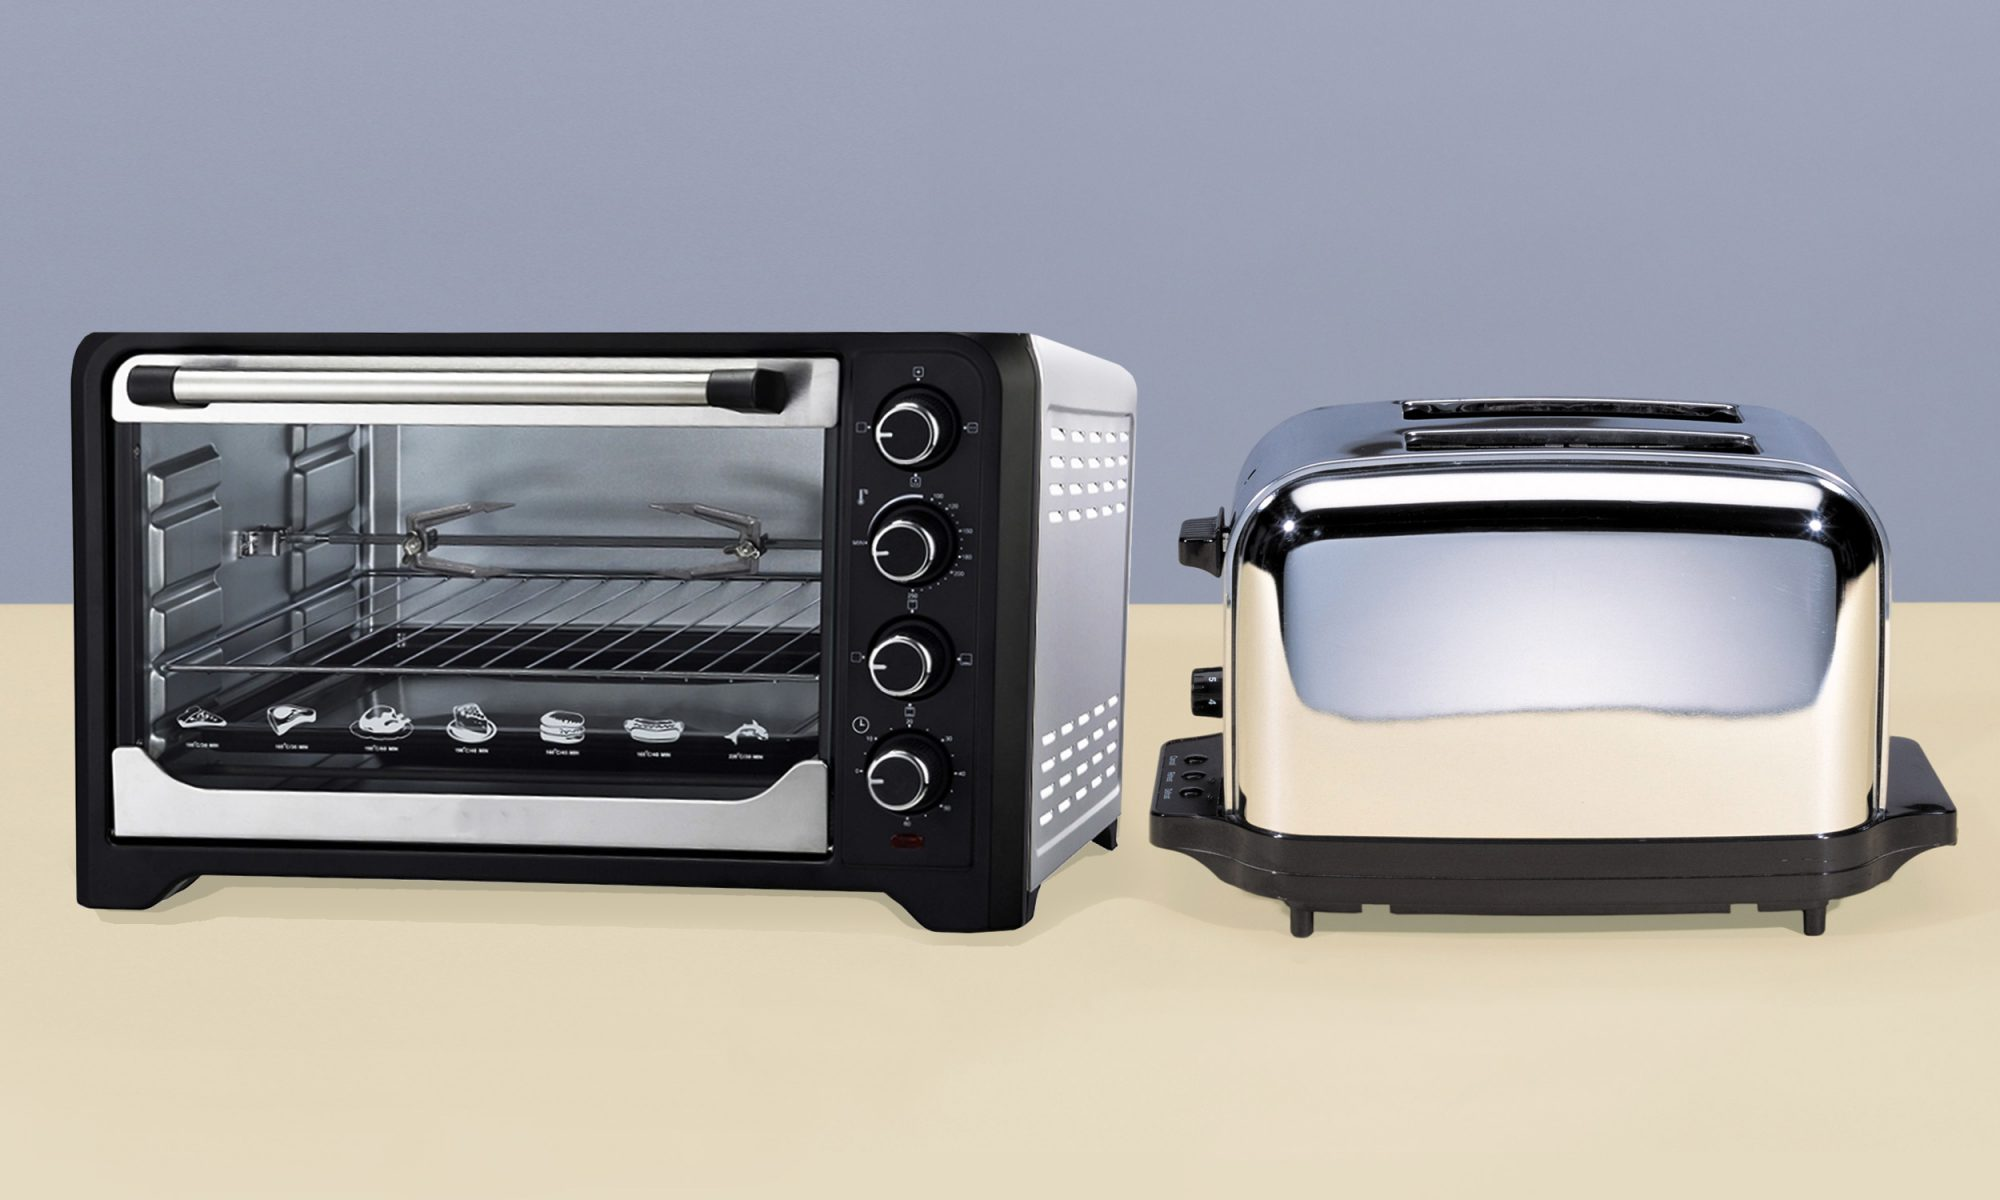 EC: Are You a Slot Toaster or a Toaster Oven Kind of Person?